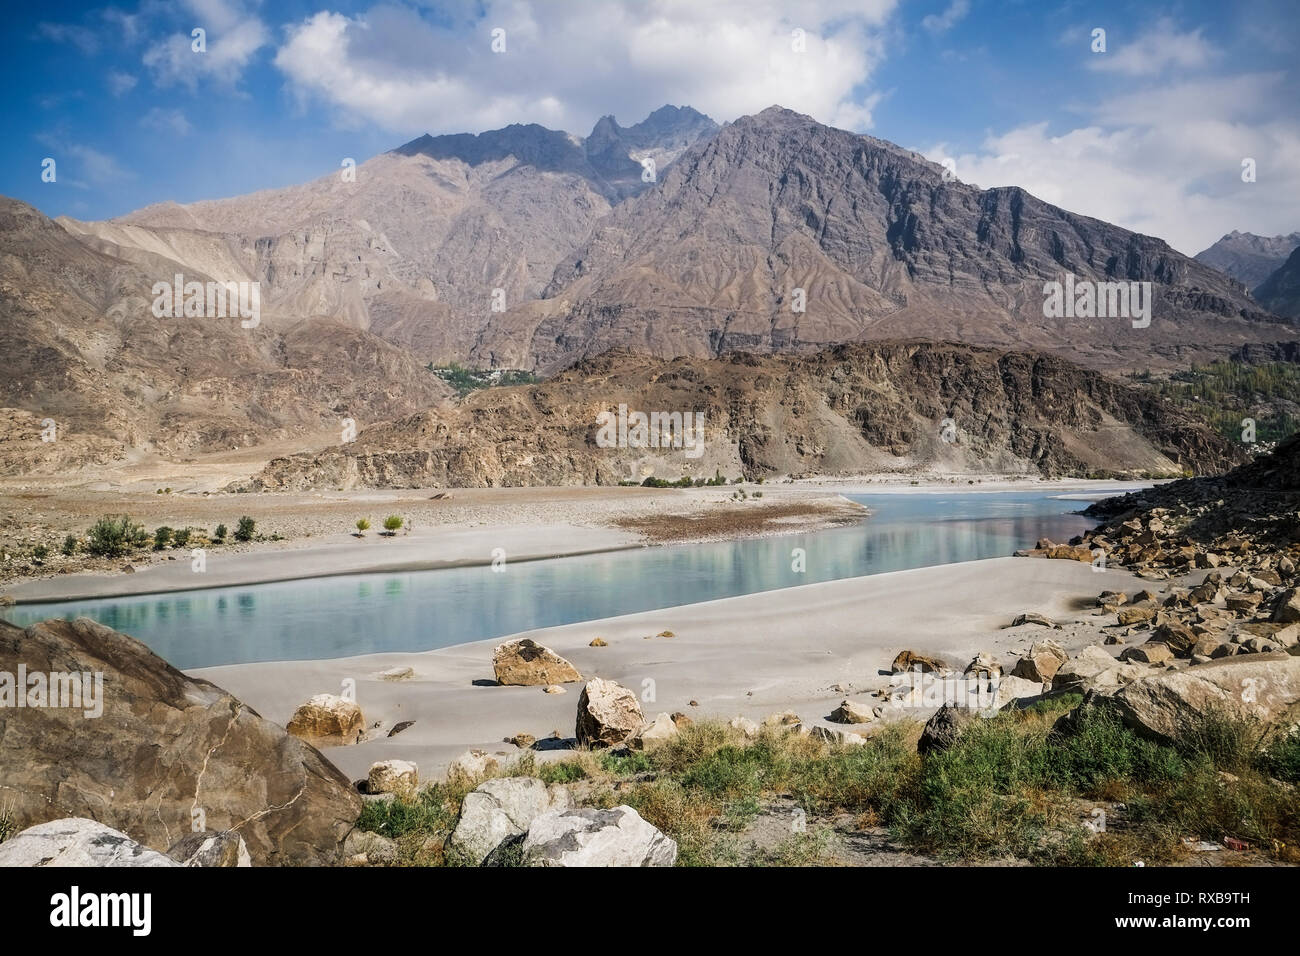 Nature landscape view of mountains and clear water of river at Ghanche district. Gilgit Baltistan, Pakistan. - Stock Image